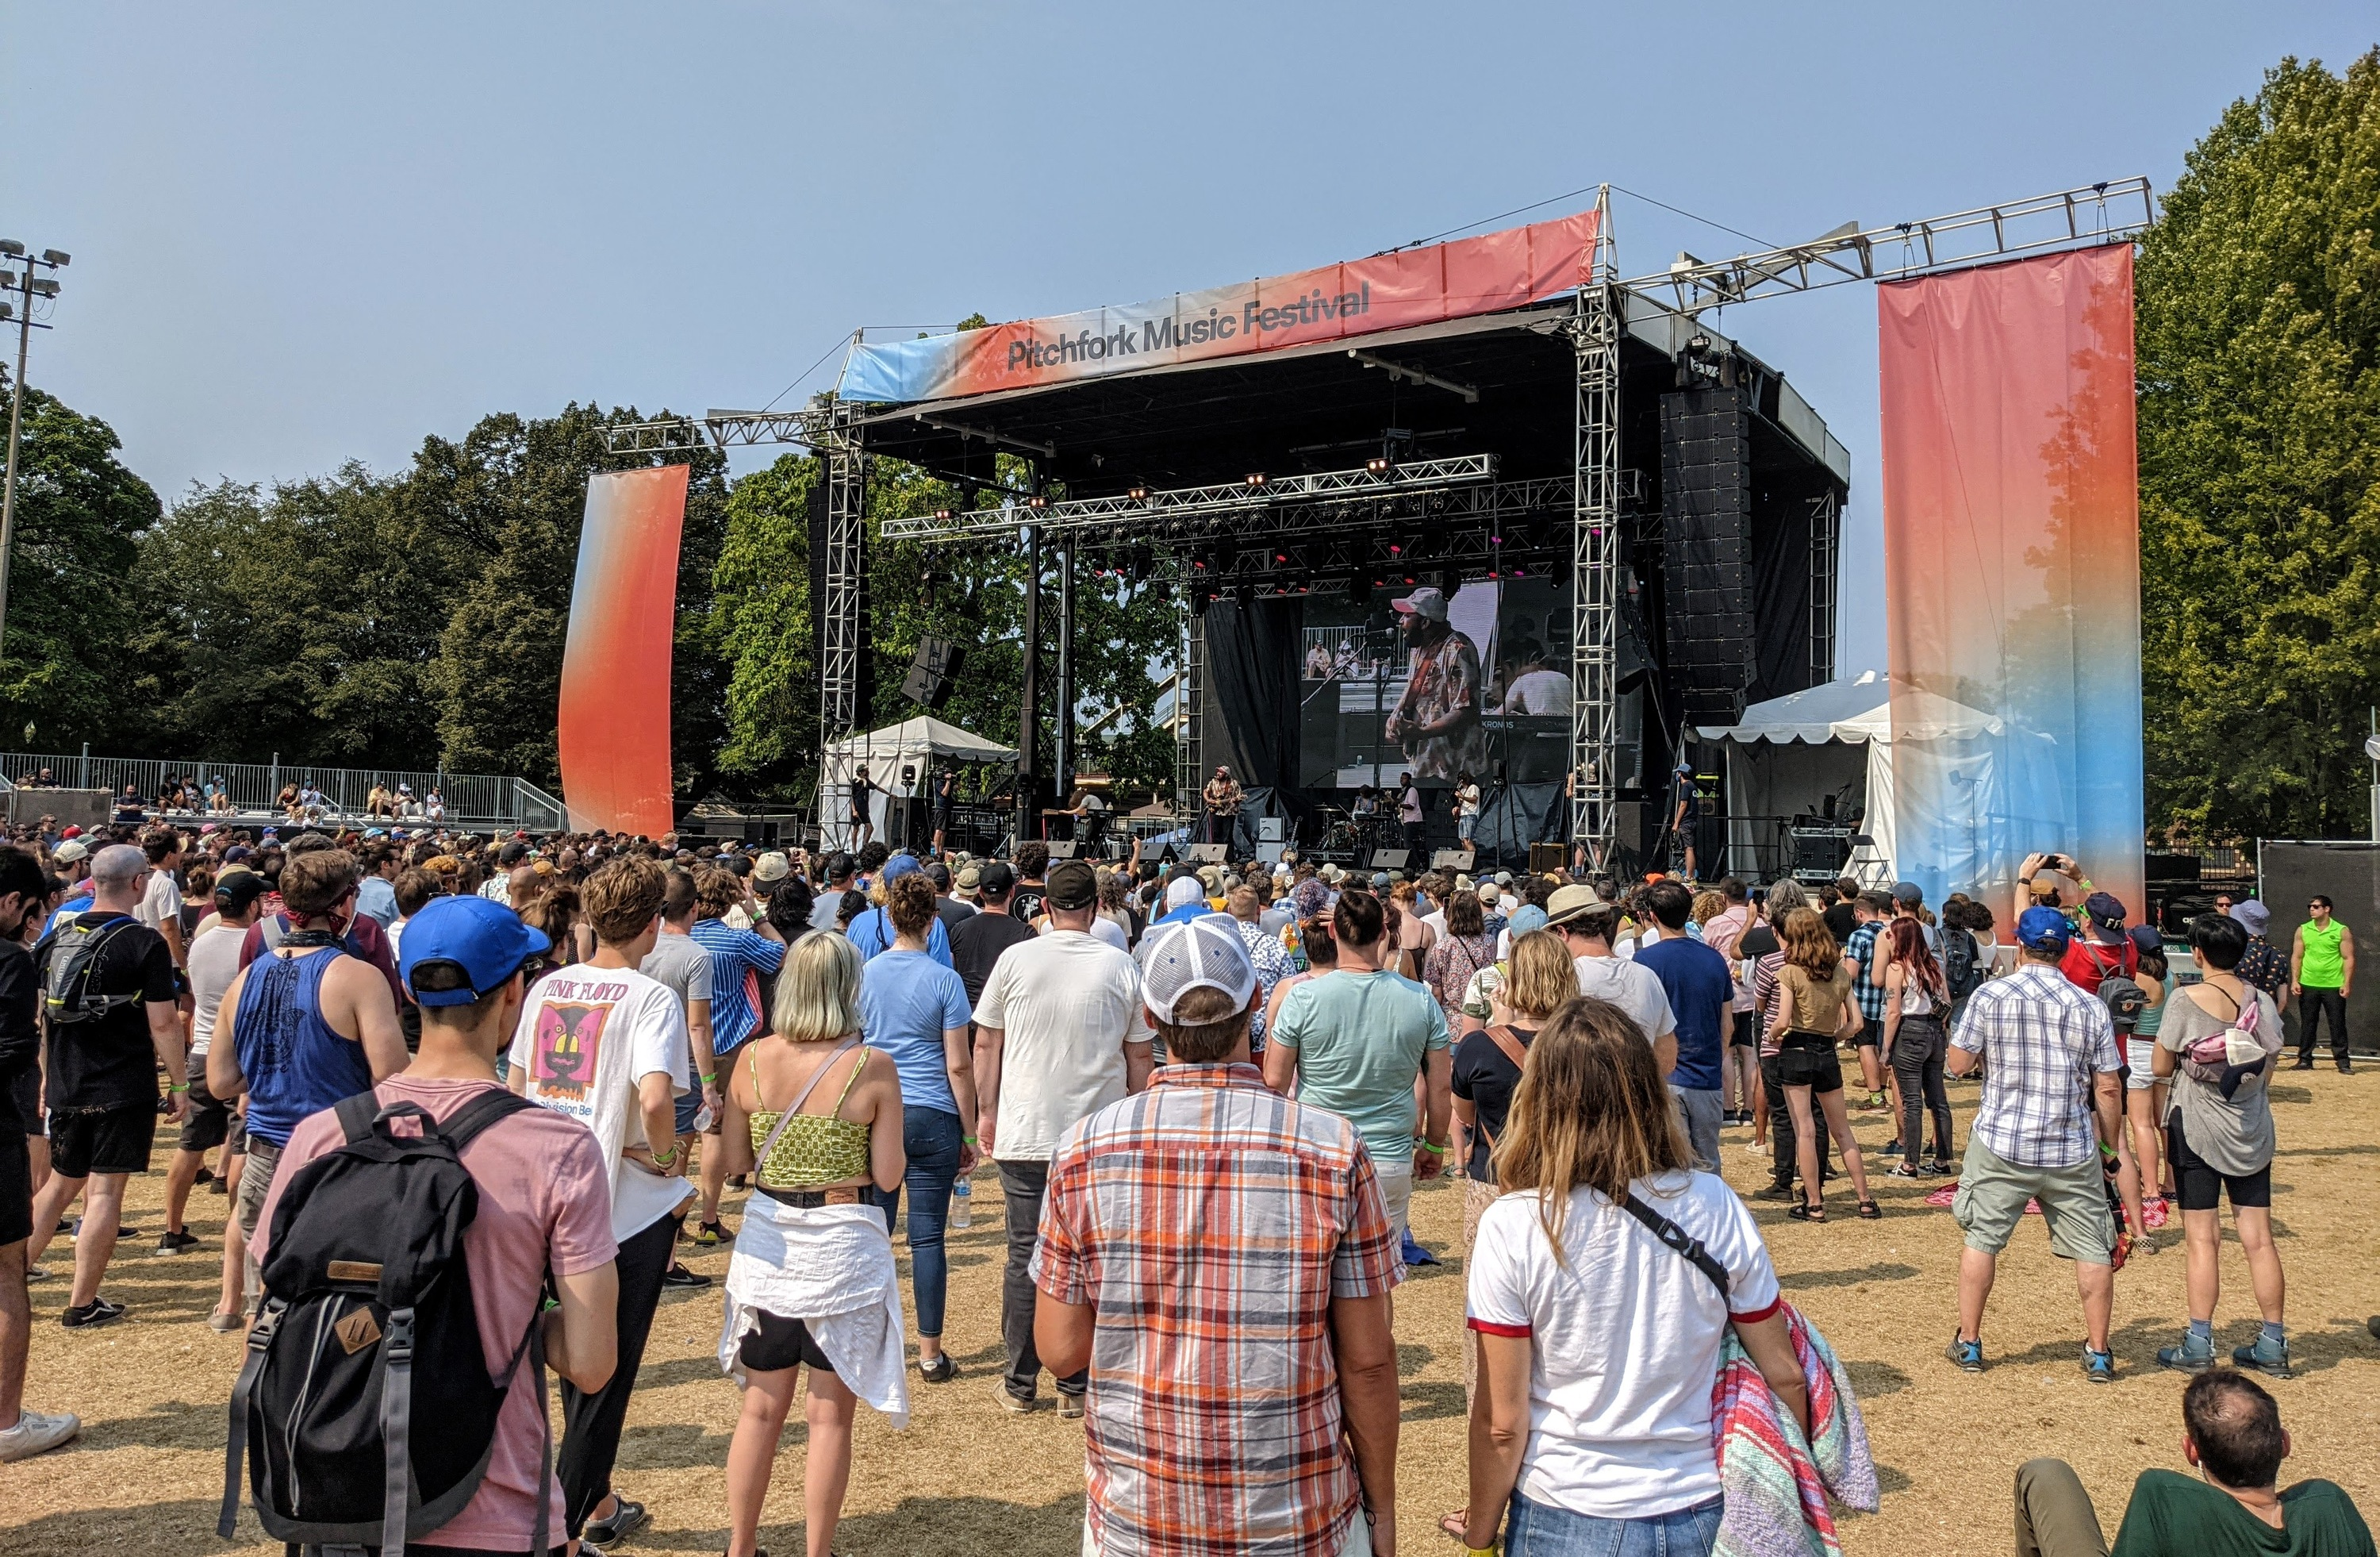 8 amazing moments at Pitchfork Music Festival 2021